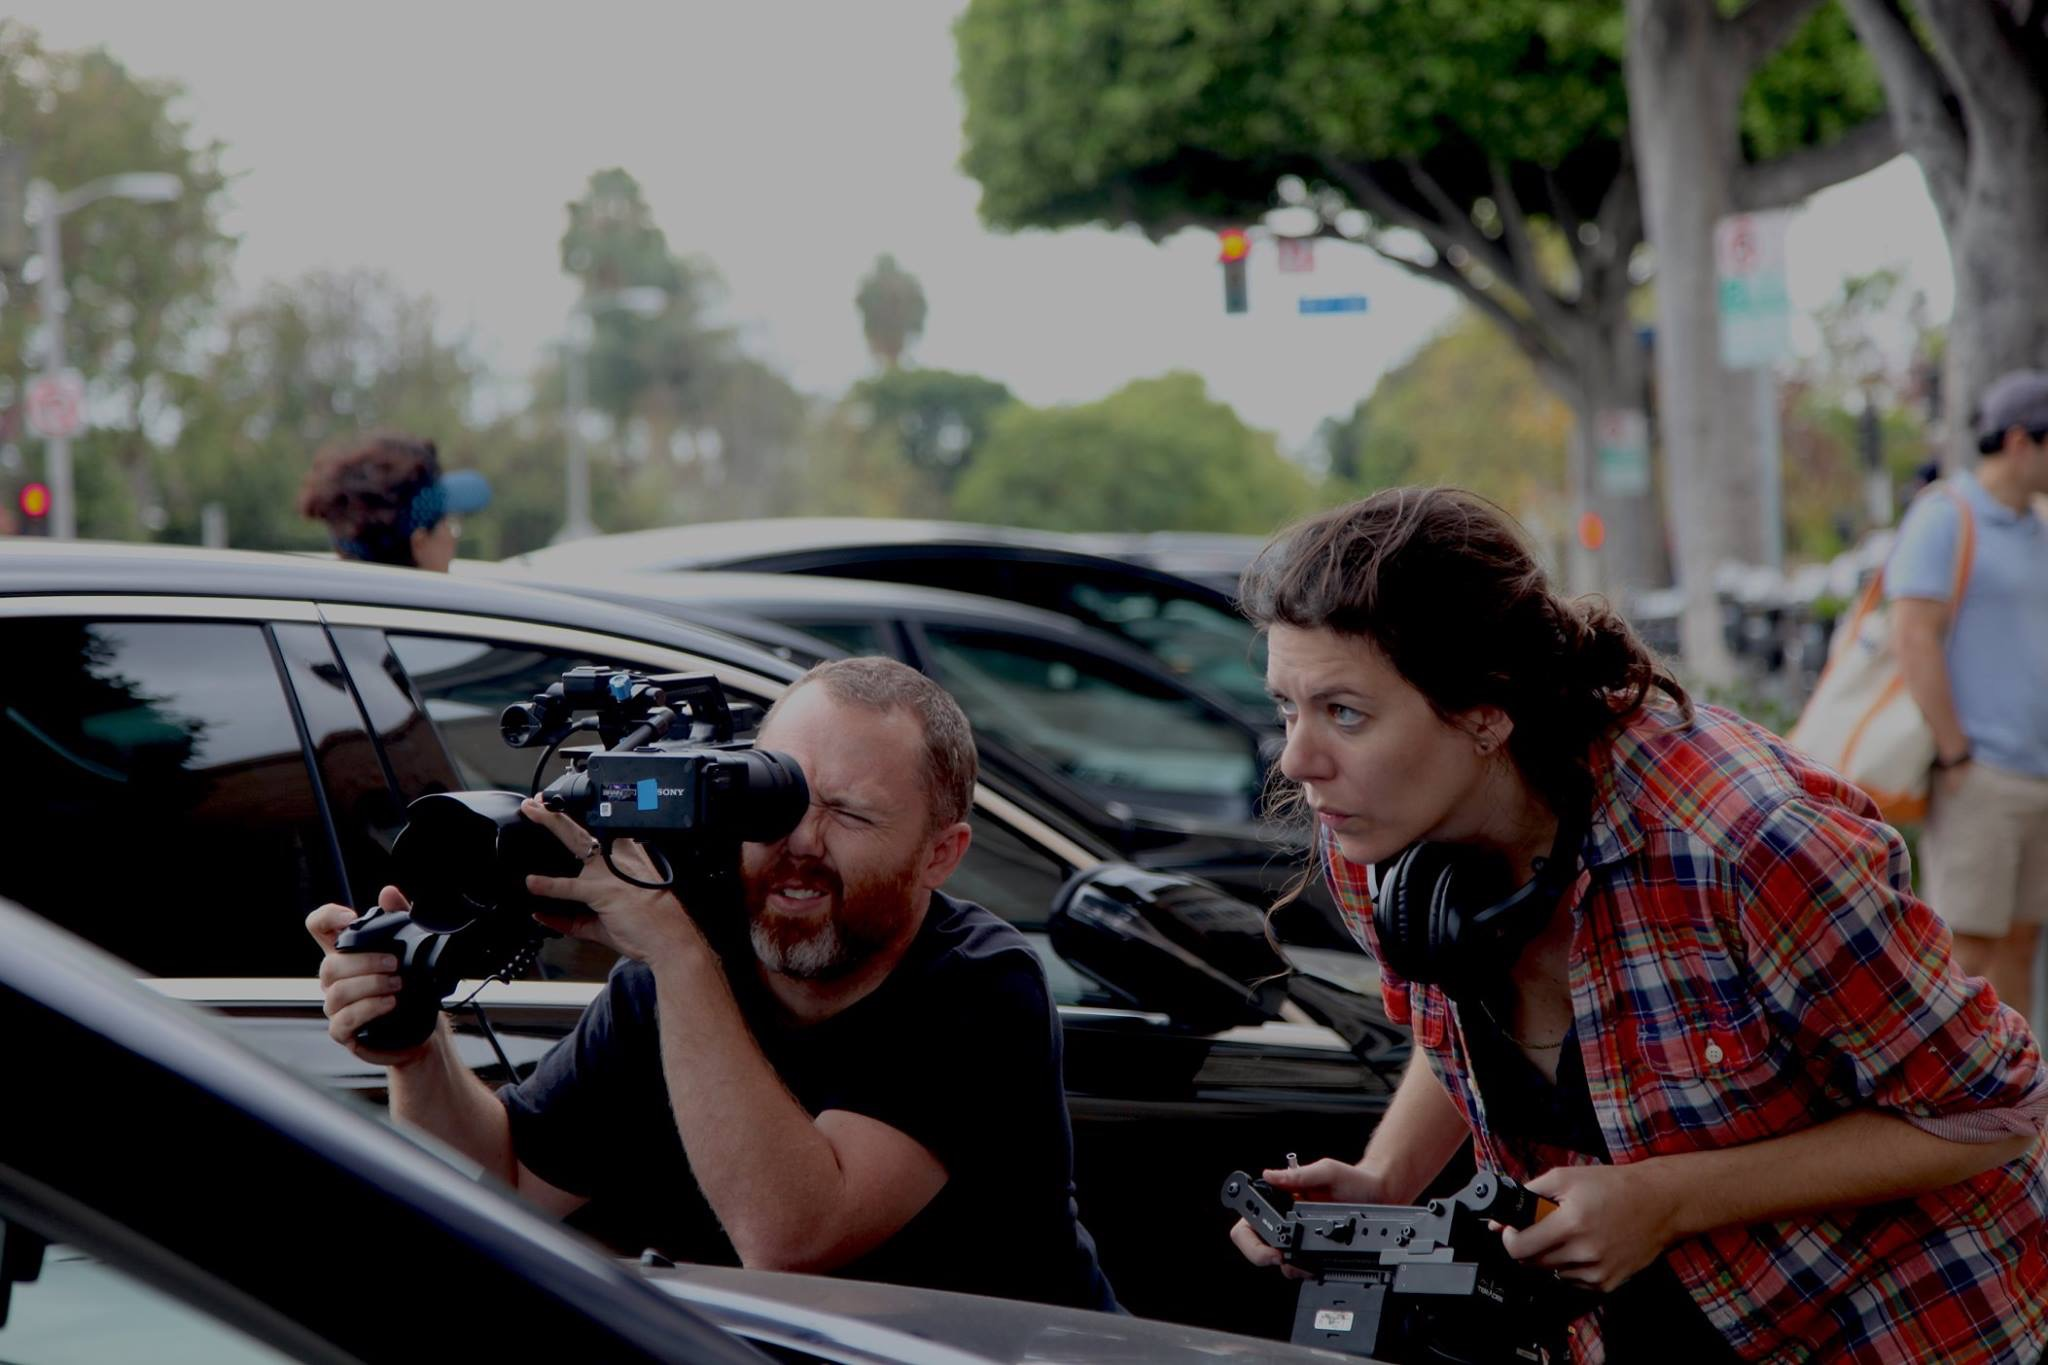 On set in LA for   My Americ a  with DP  Mike Rossetti